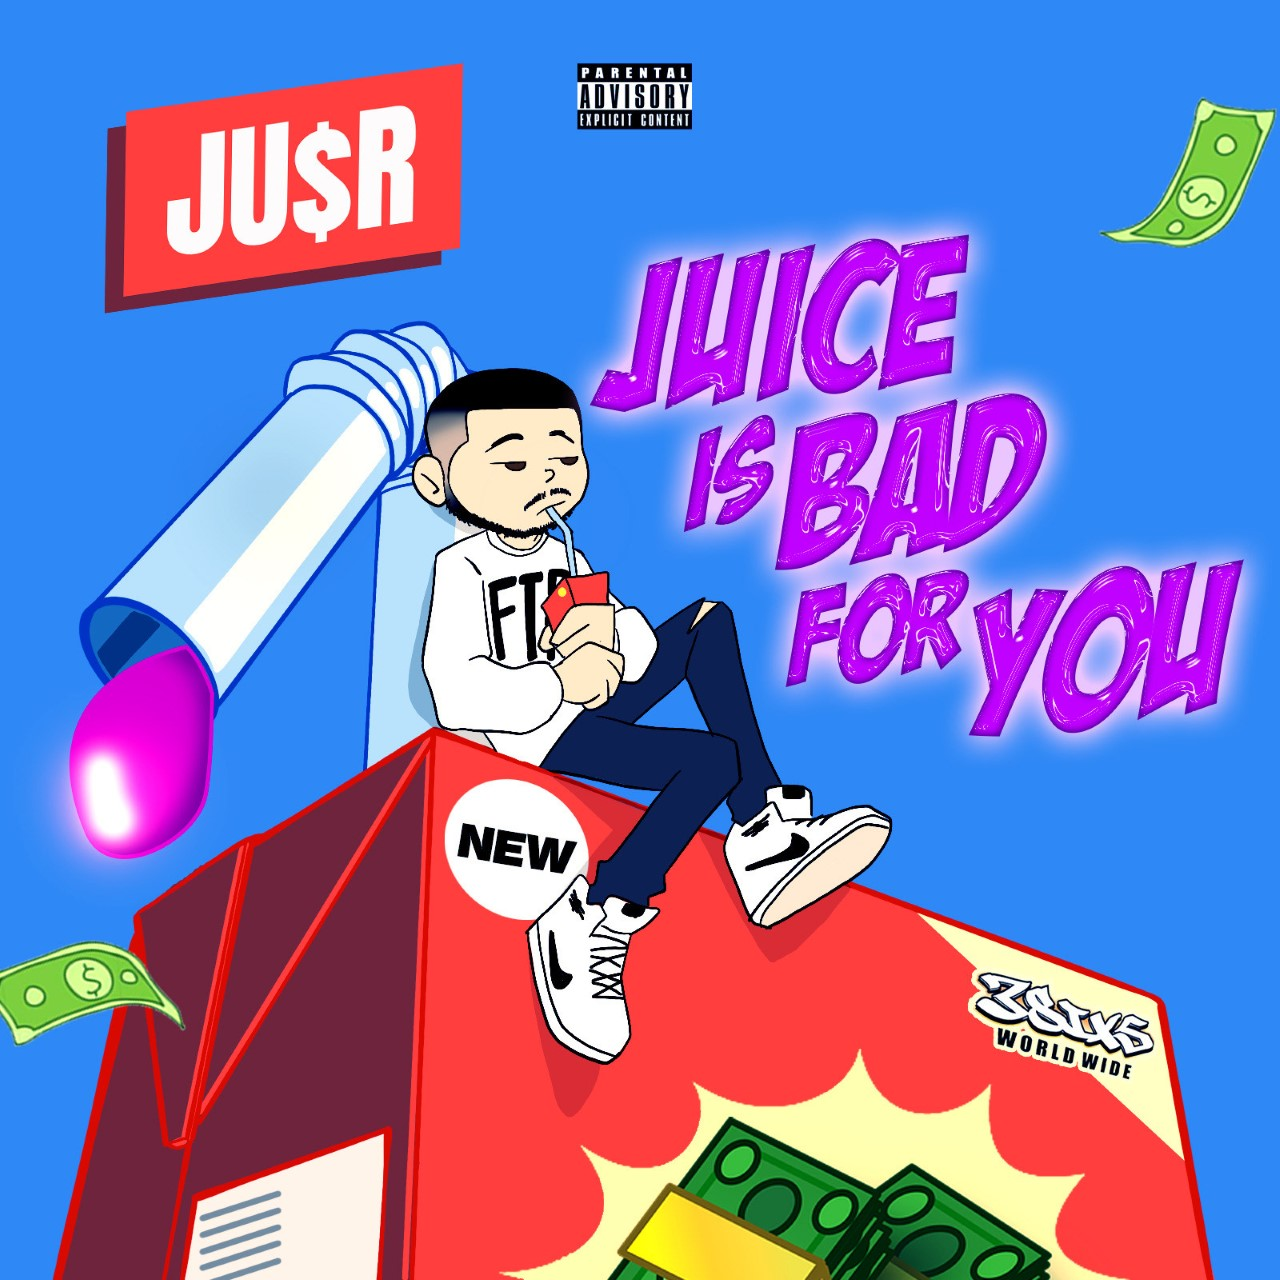 """Ju$r drops new project """"Juice Is Bad for You"""""""